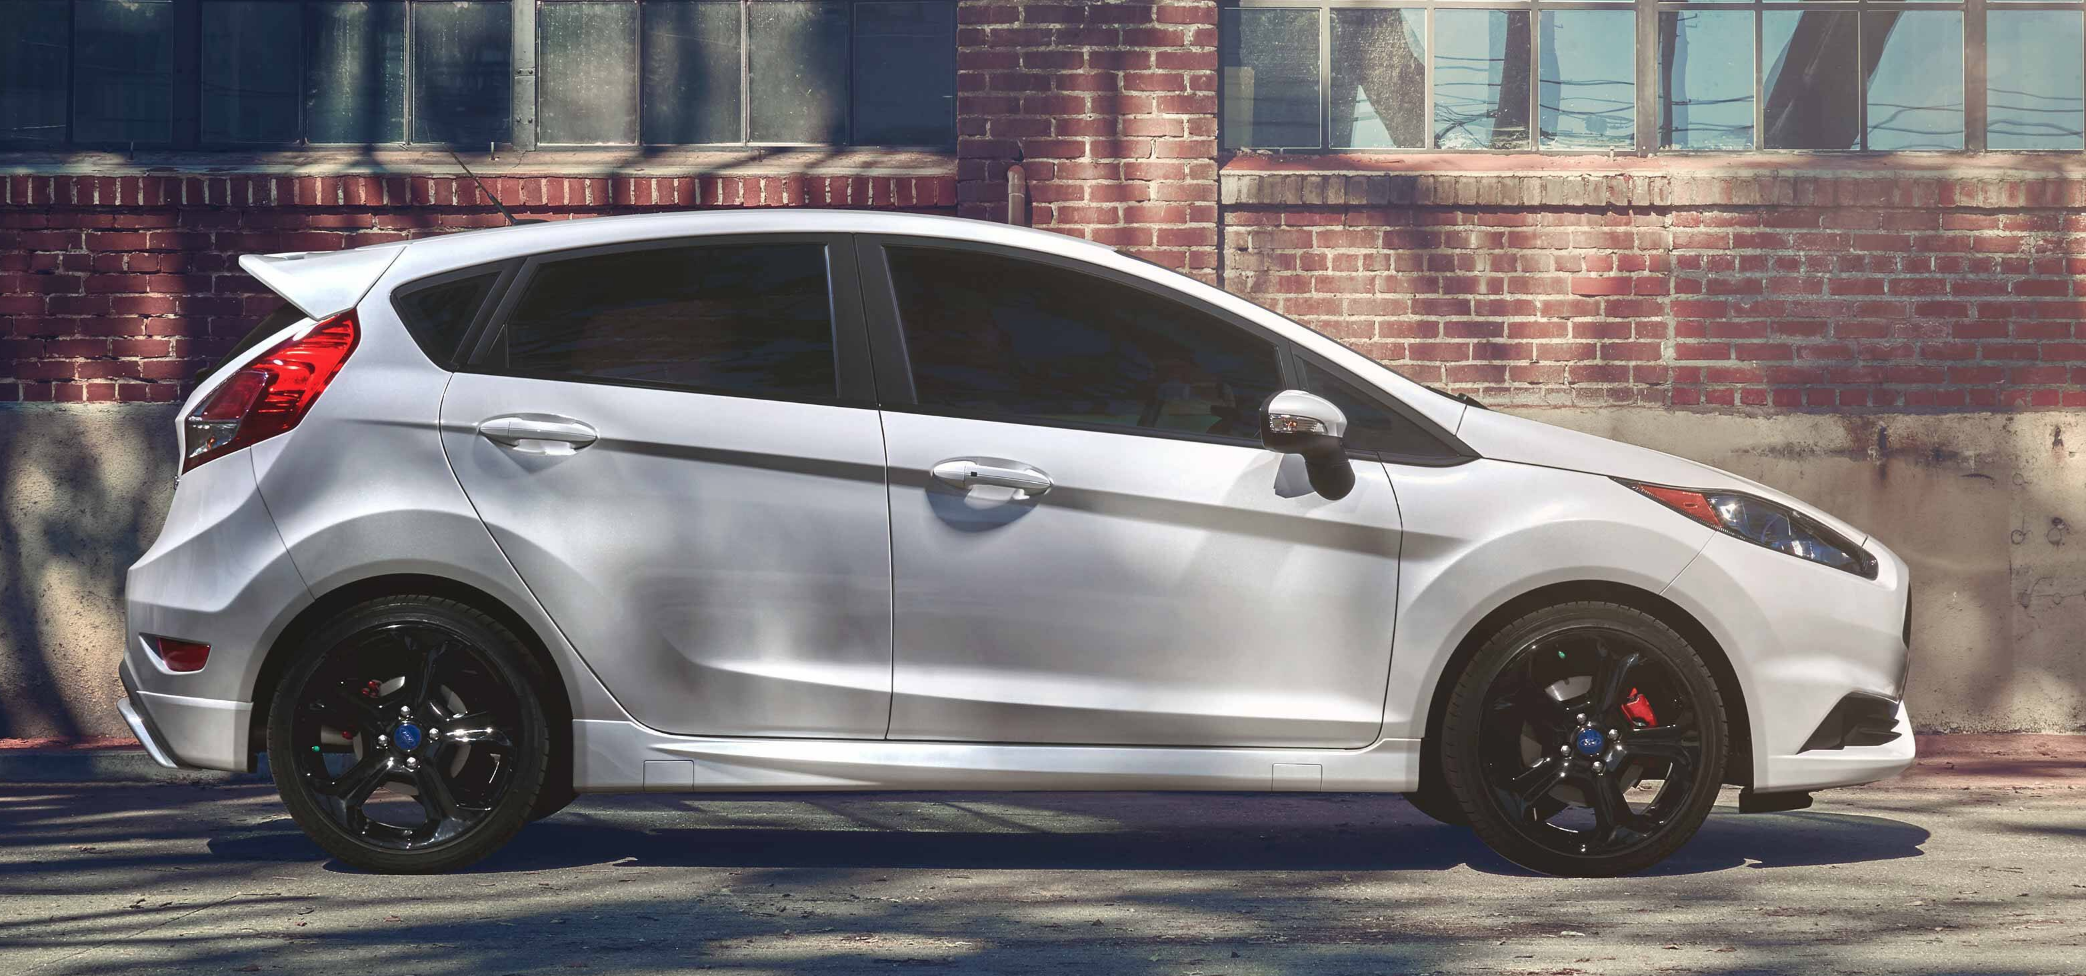 New Ford Fiesta in Wilmington, NC